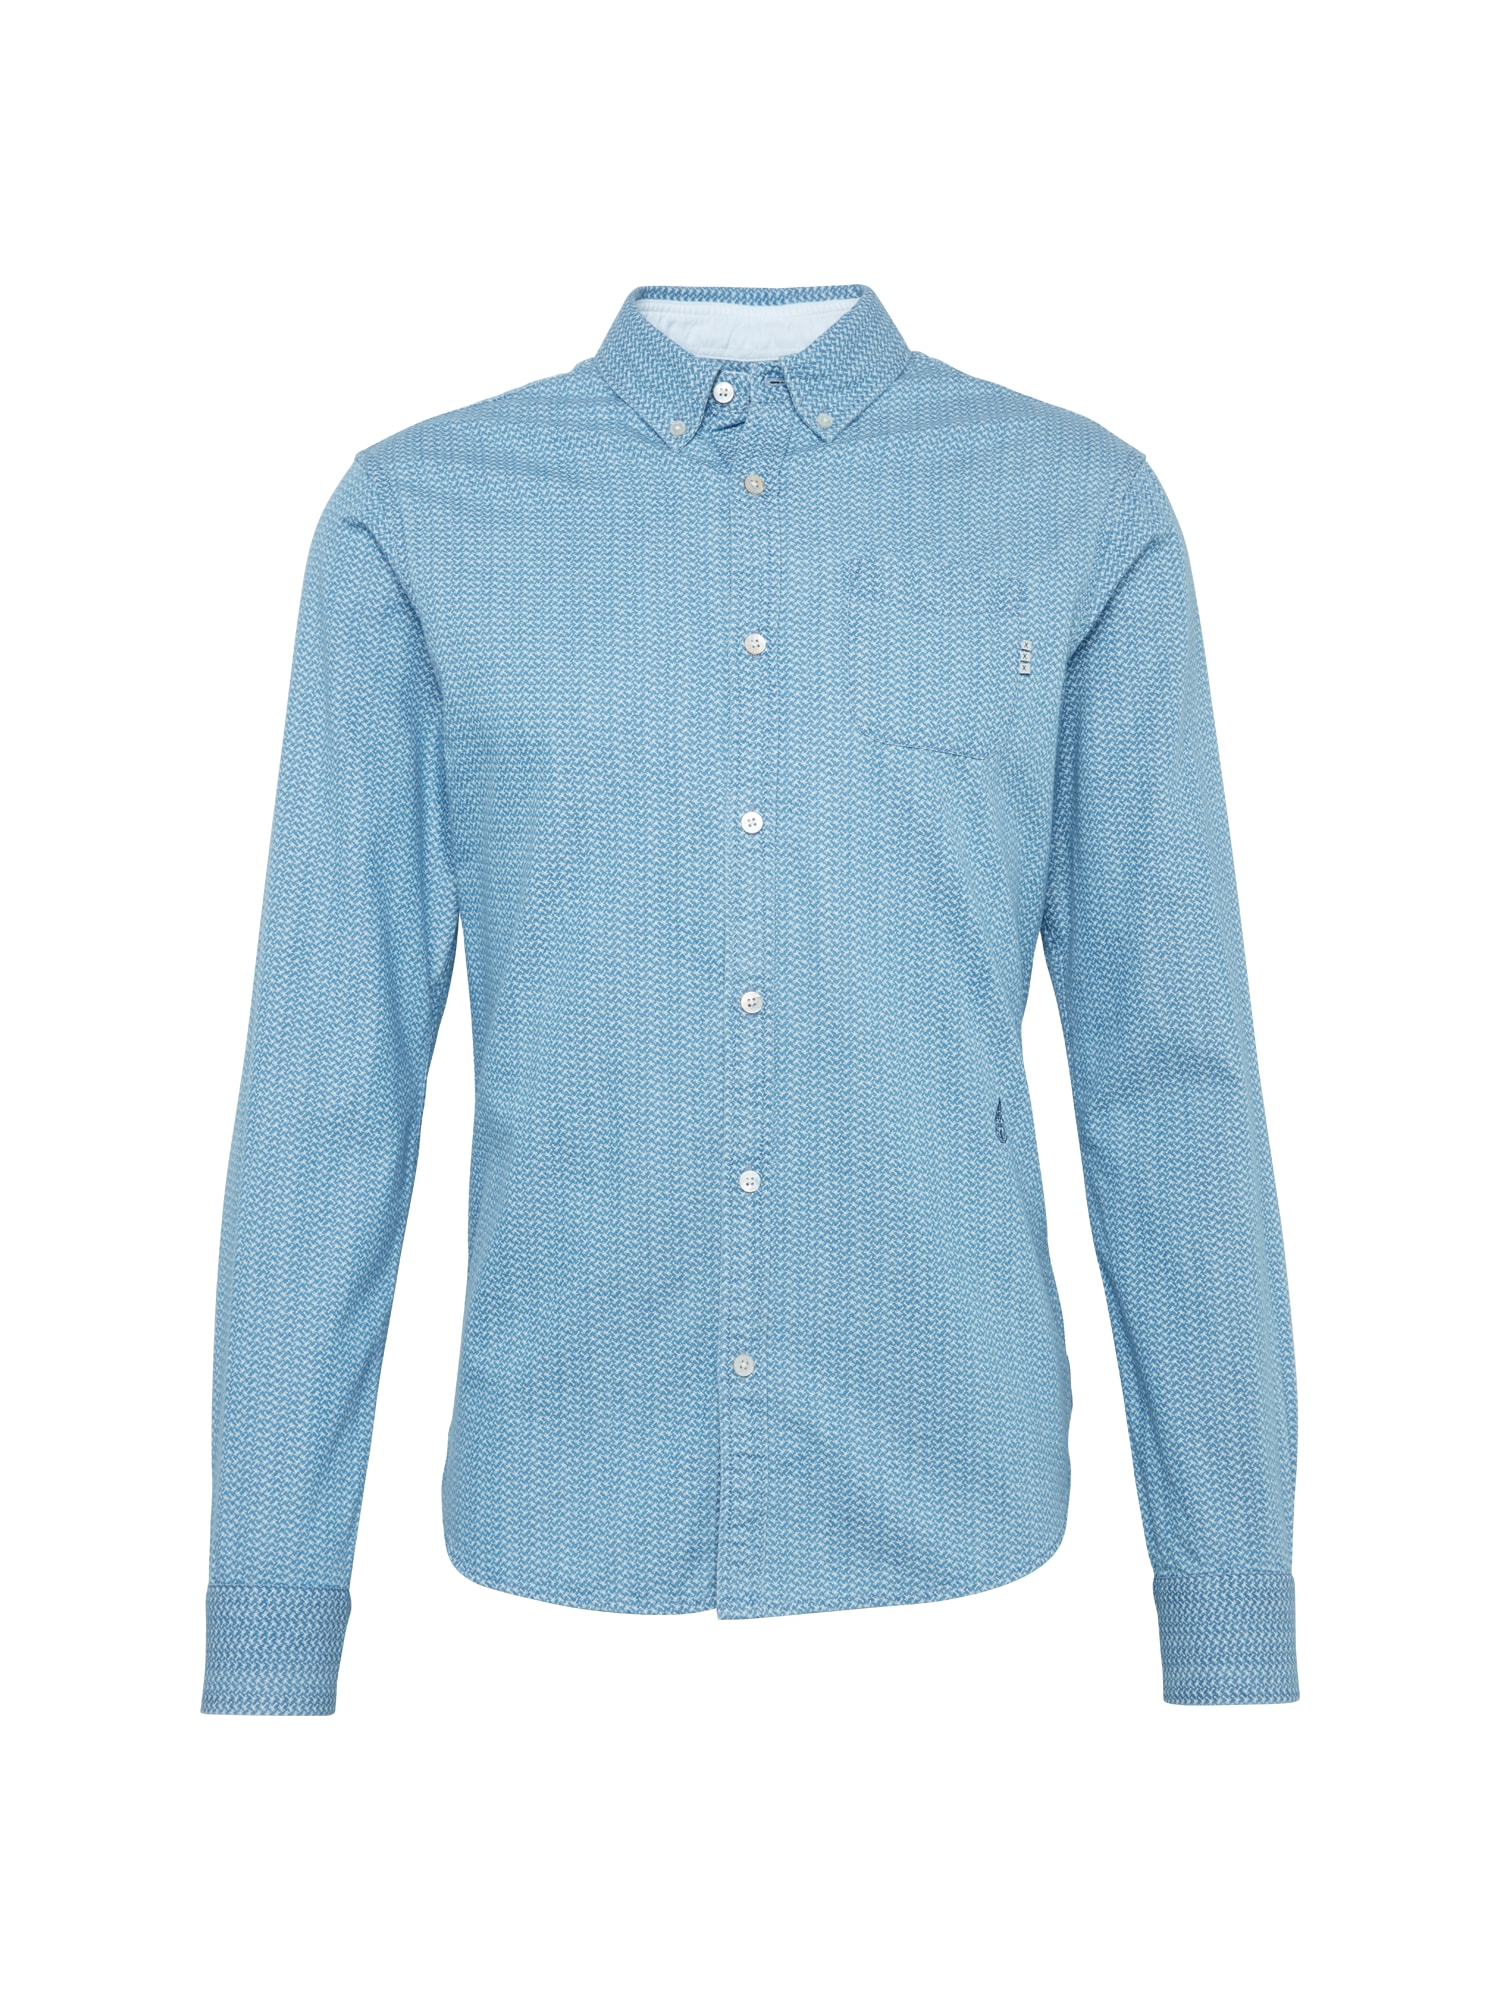 SCOTCH  and  SODA Heren Overhemd Ams Blauw allover printed button down shirt lic